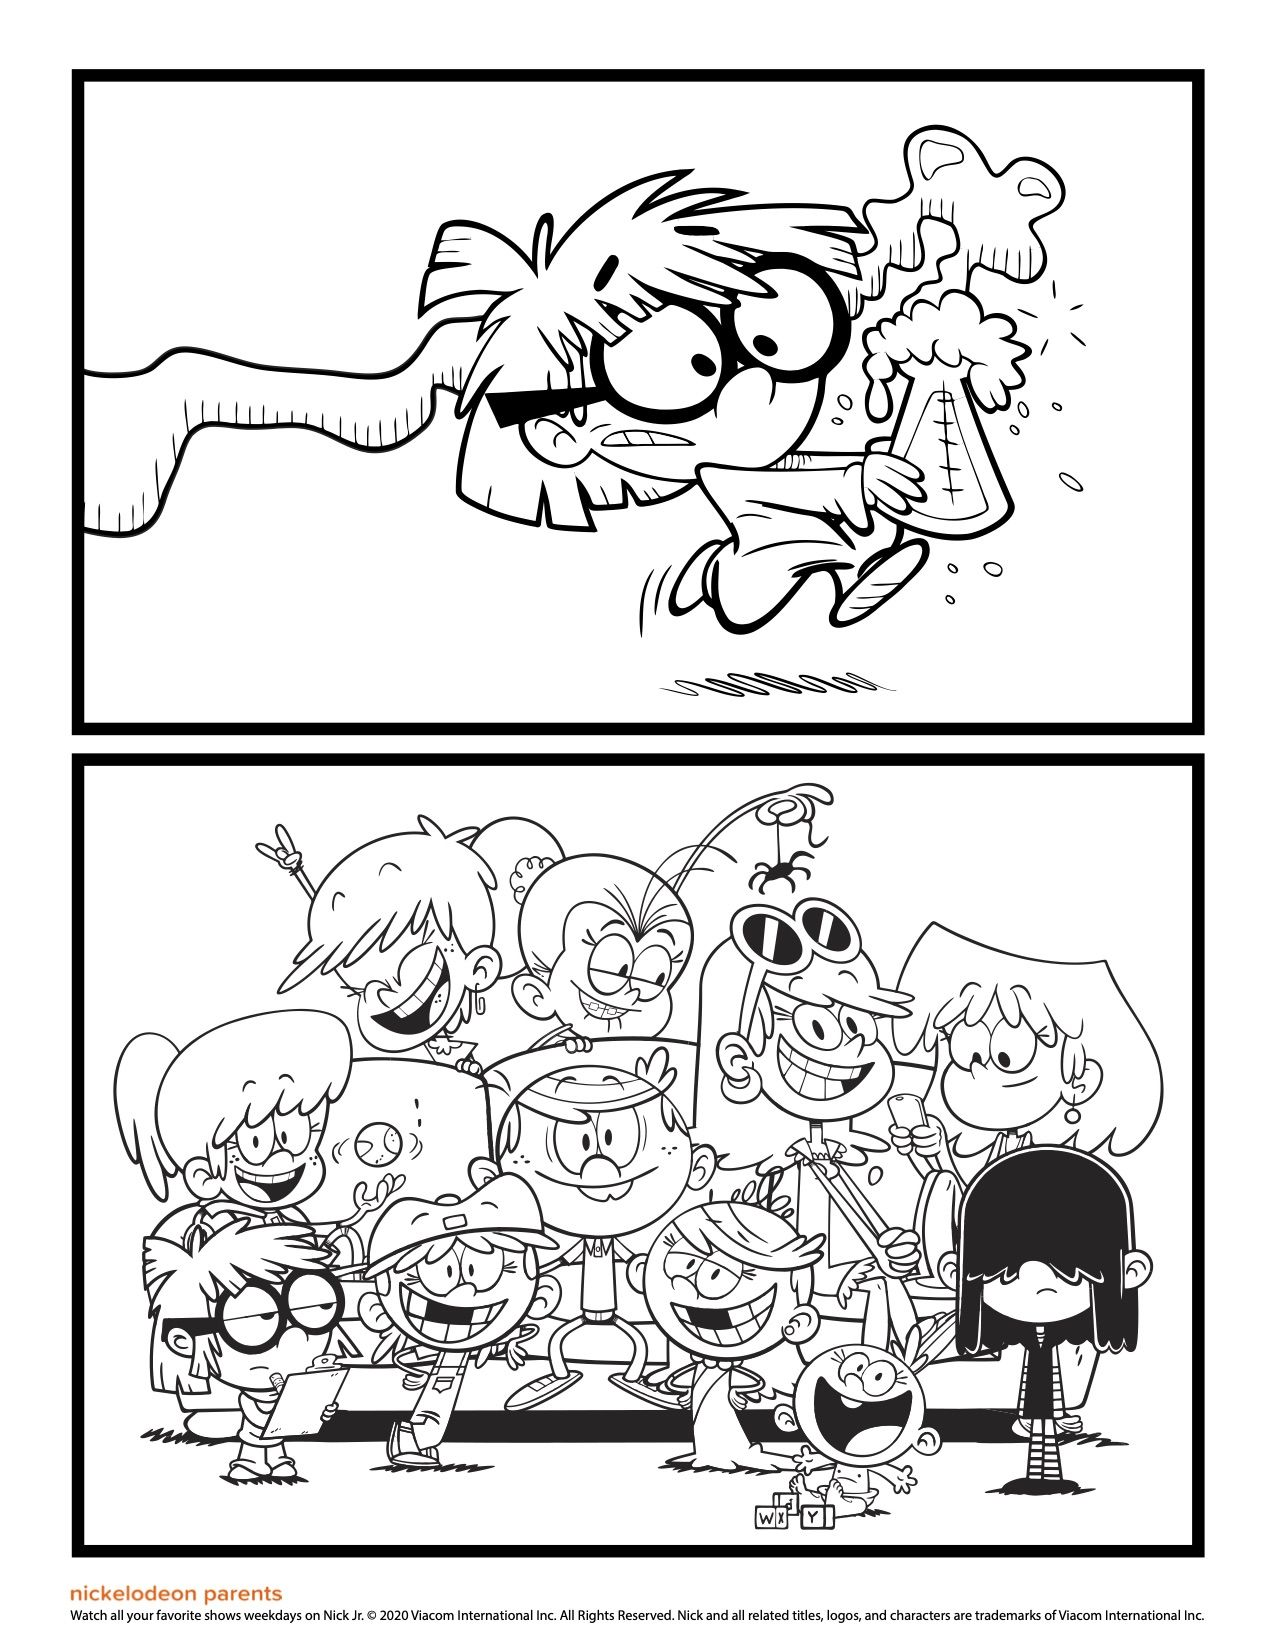 The Loud House Printable Coloring Pages Coloring Pages Printable Coloring Pages Free Printable Coloring Pages